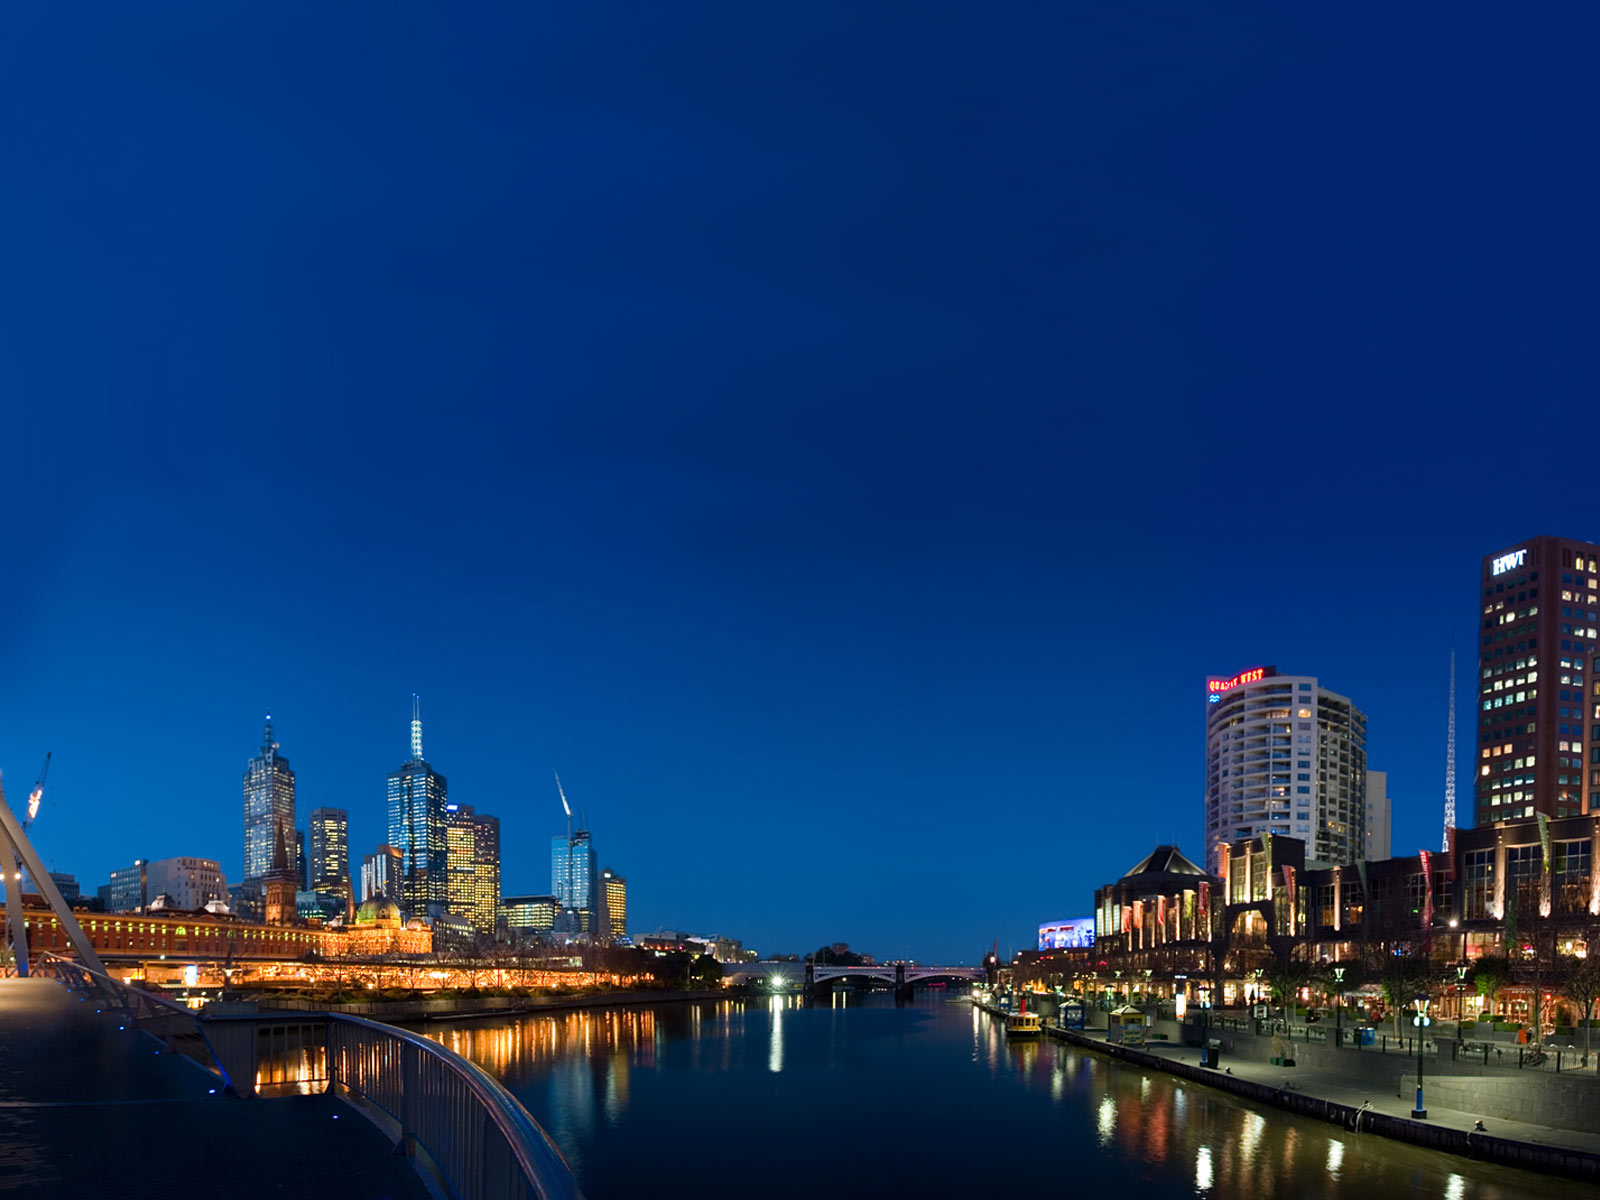 Melbourne Australia backgrounds Wallpaper in high resolution for 1600x1200